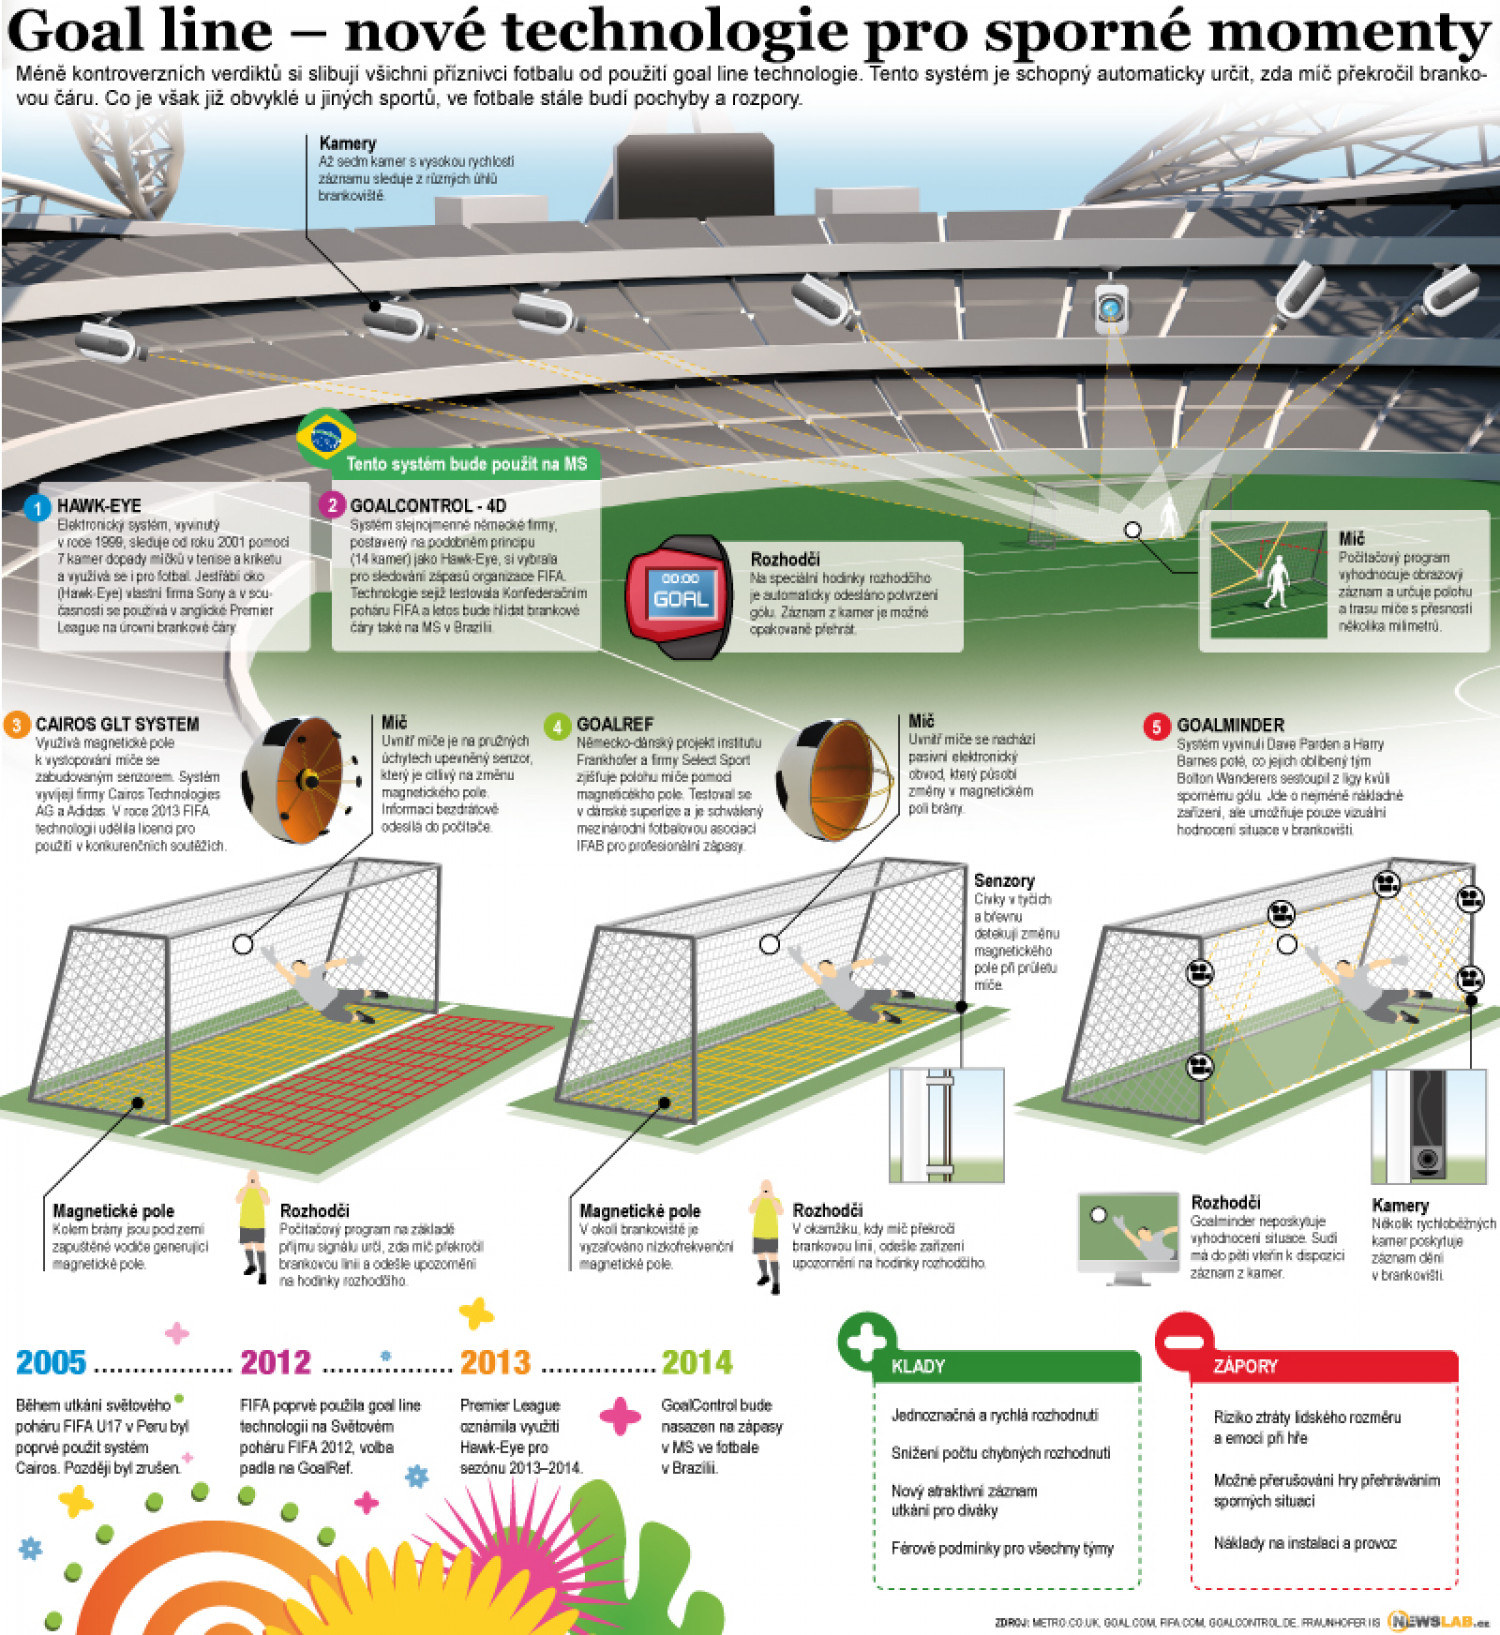 World Football: Why FIFA Should Not Implement Goal Line Technology